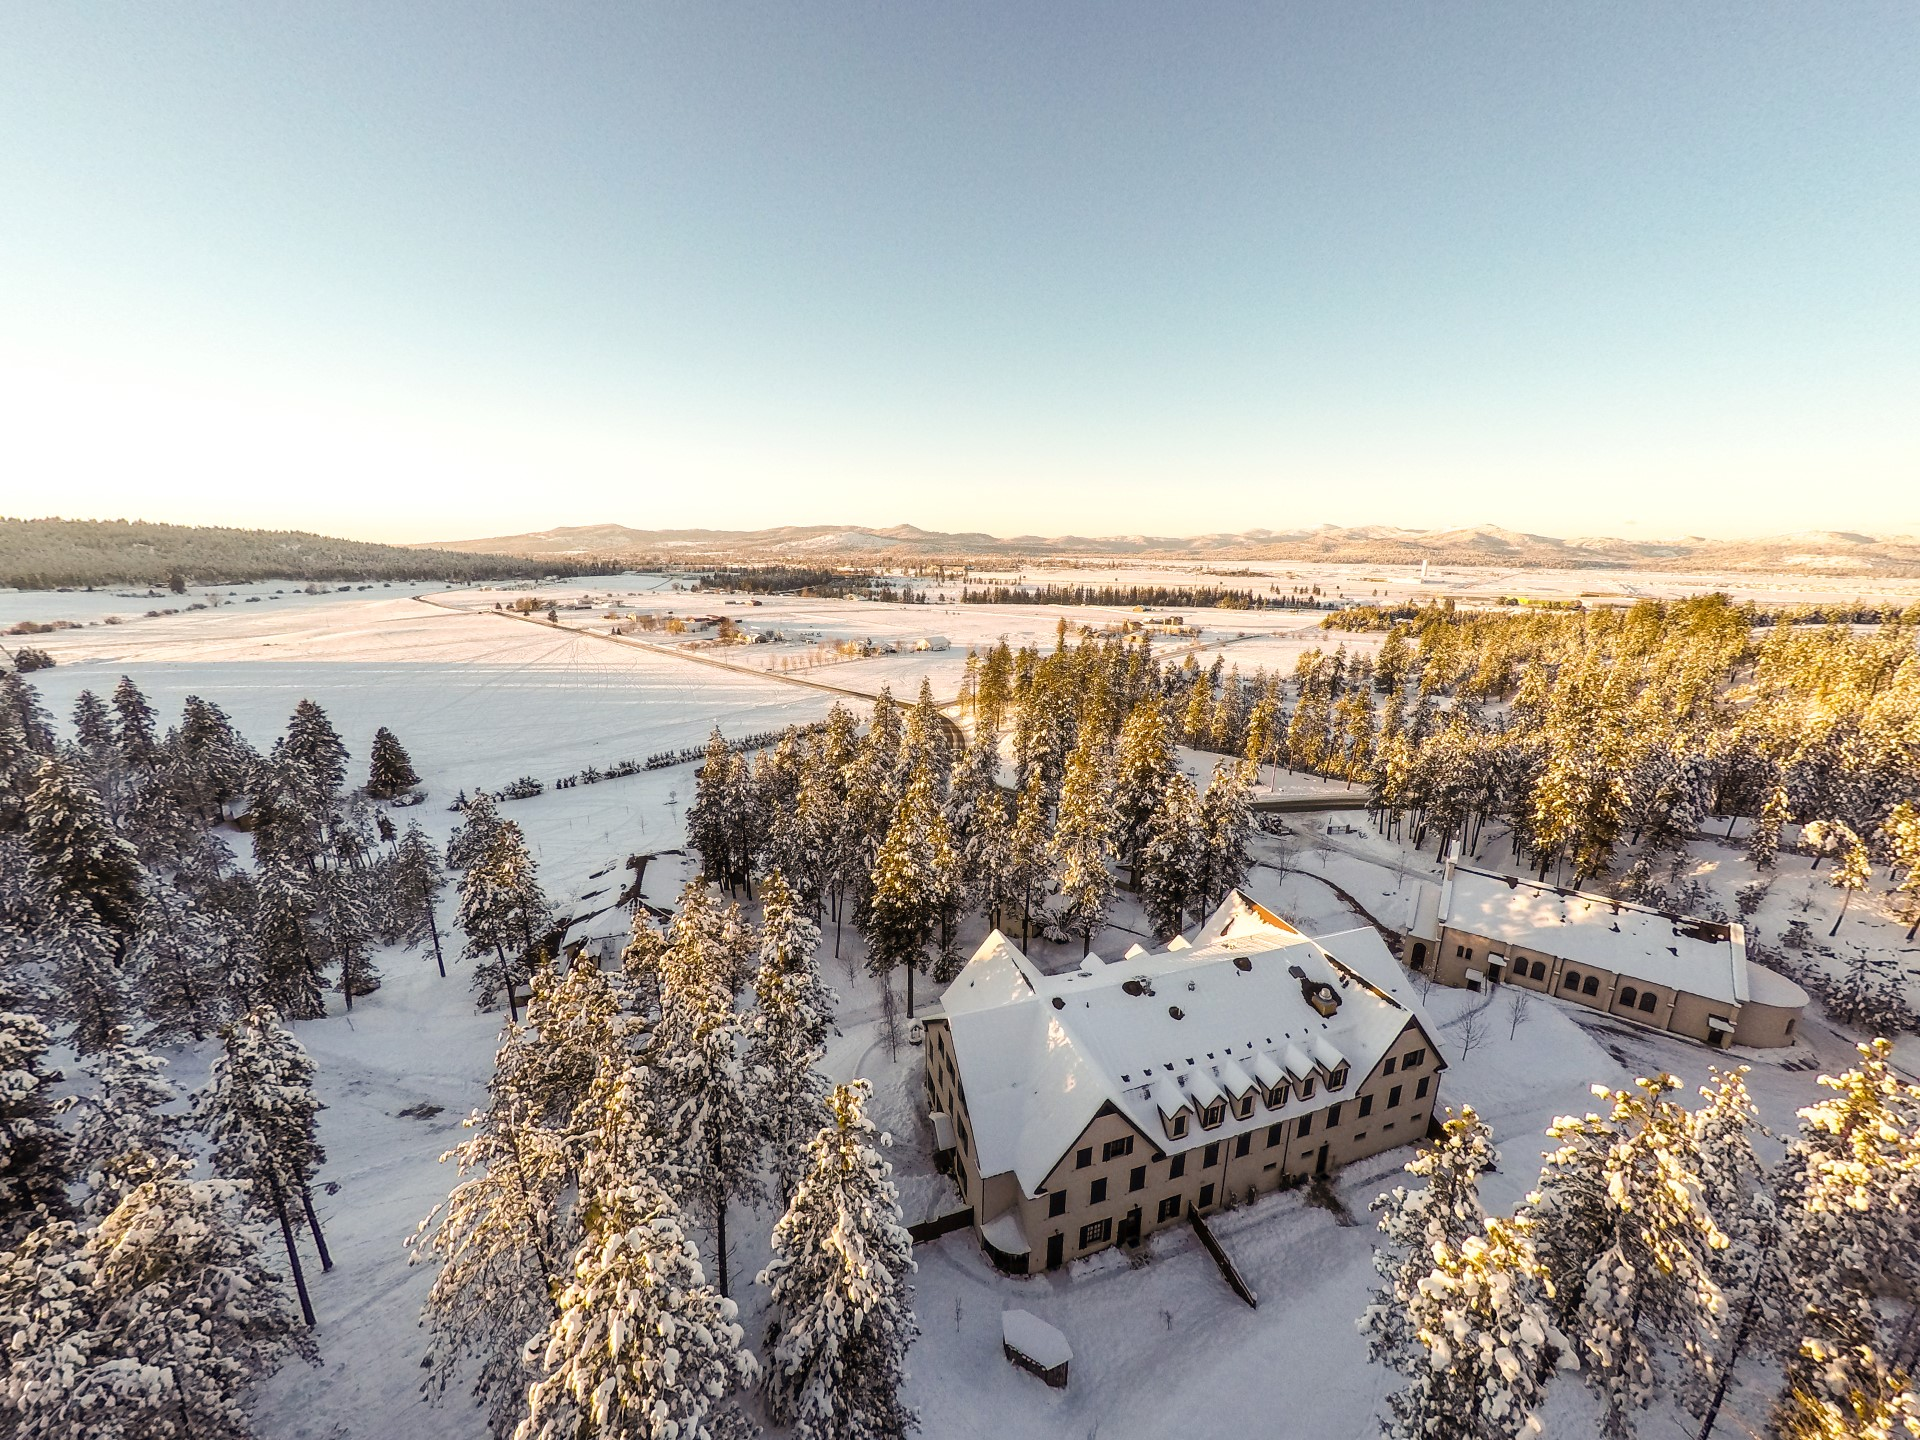 Aerial Drone Image of North Idaho in Winter